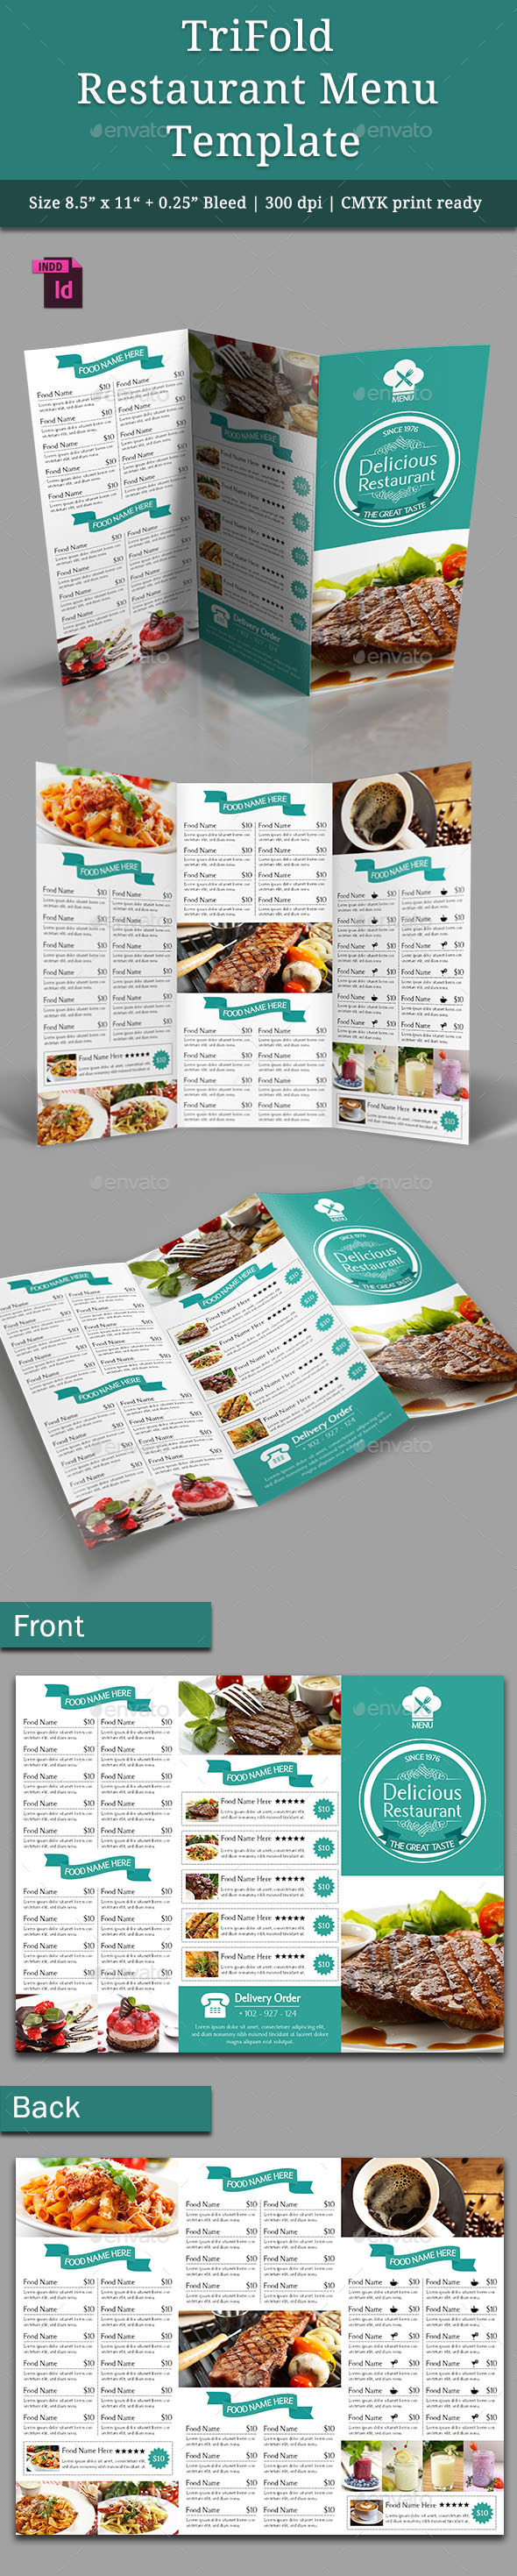 TriFold Restaurant Menu Template Vol. 4 - Food Menus Print Templates